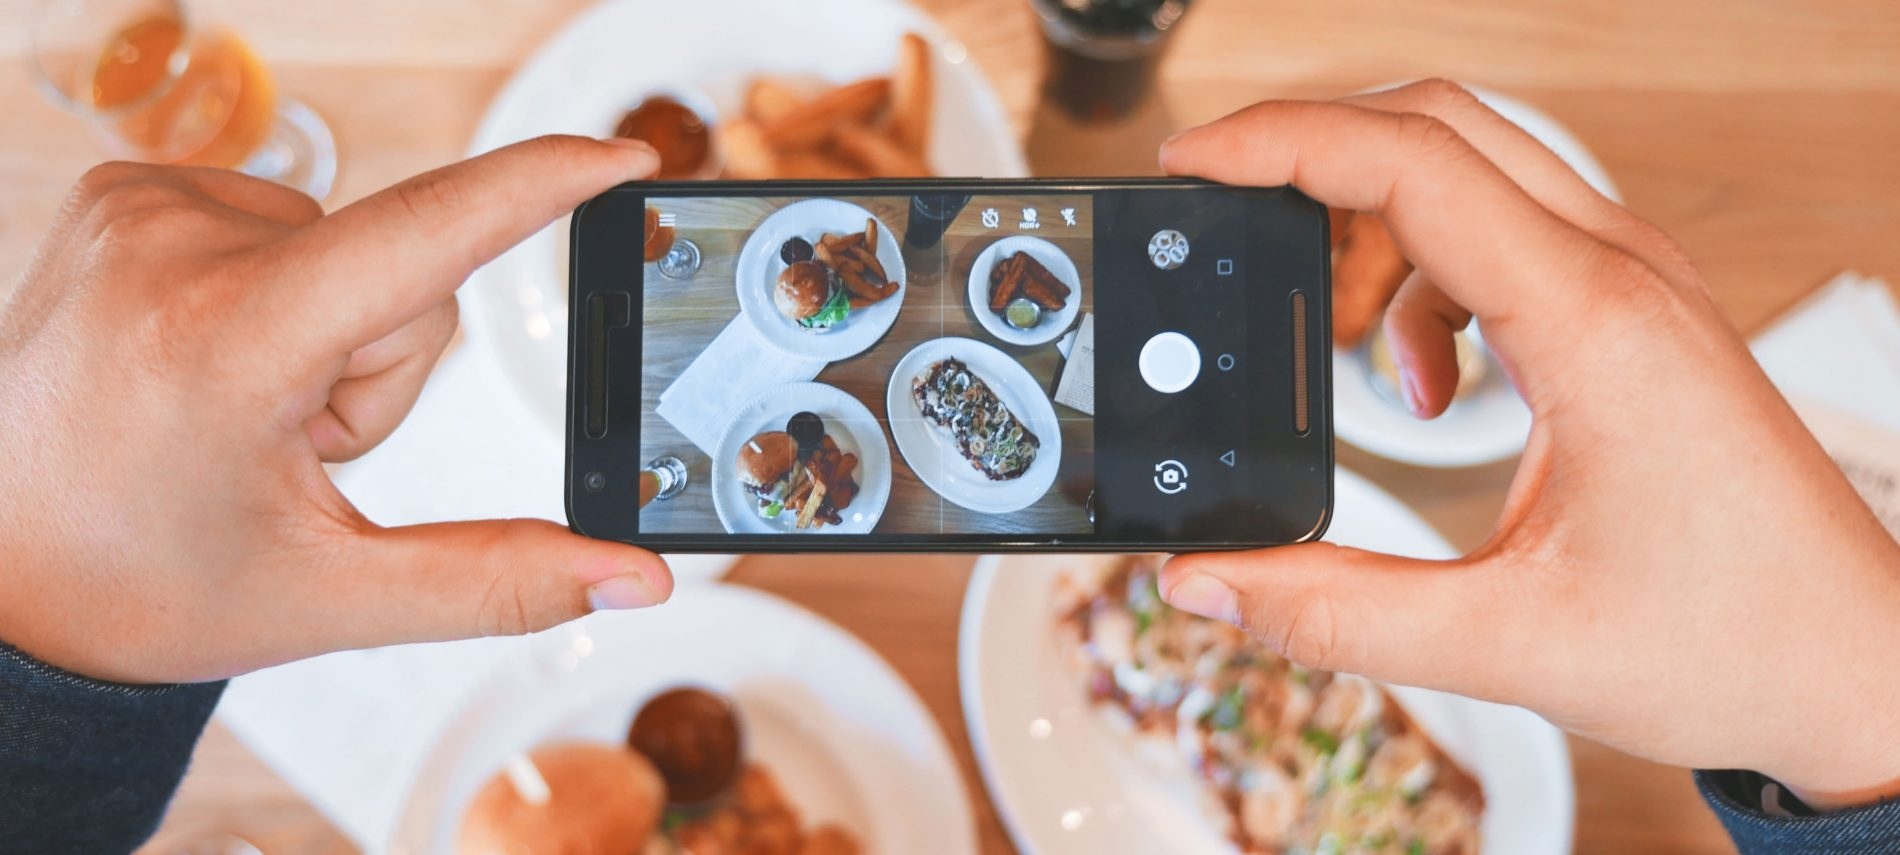 someone holding a smart phone while taking a photo of a breakfast table with plates of breakfast foods